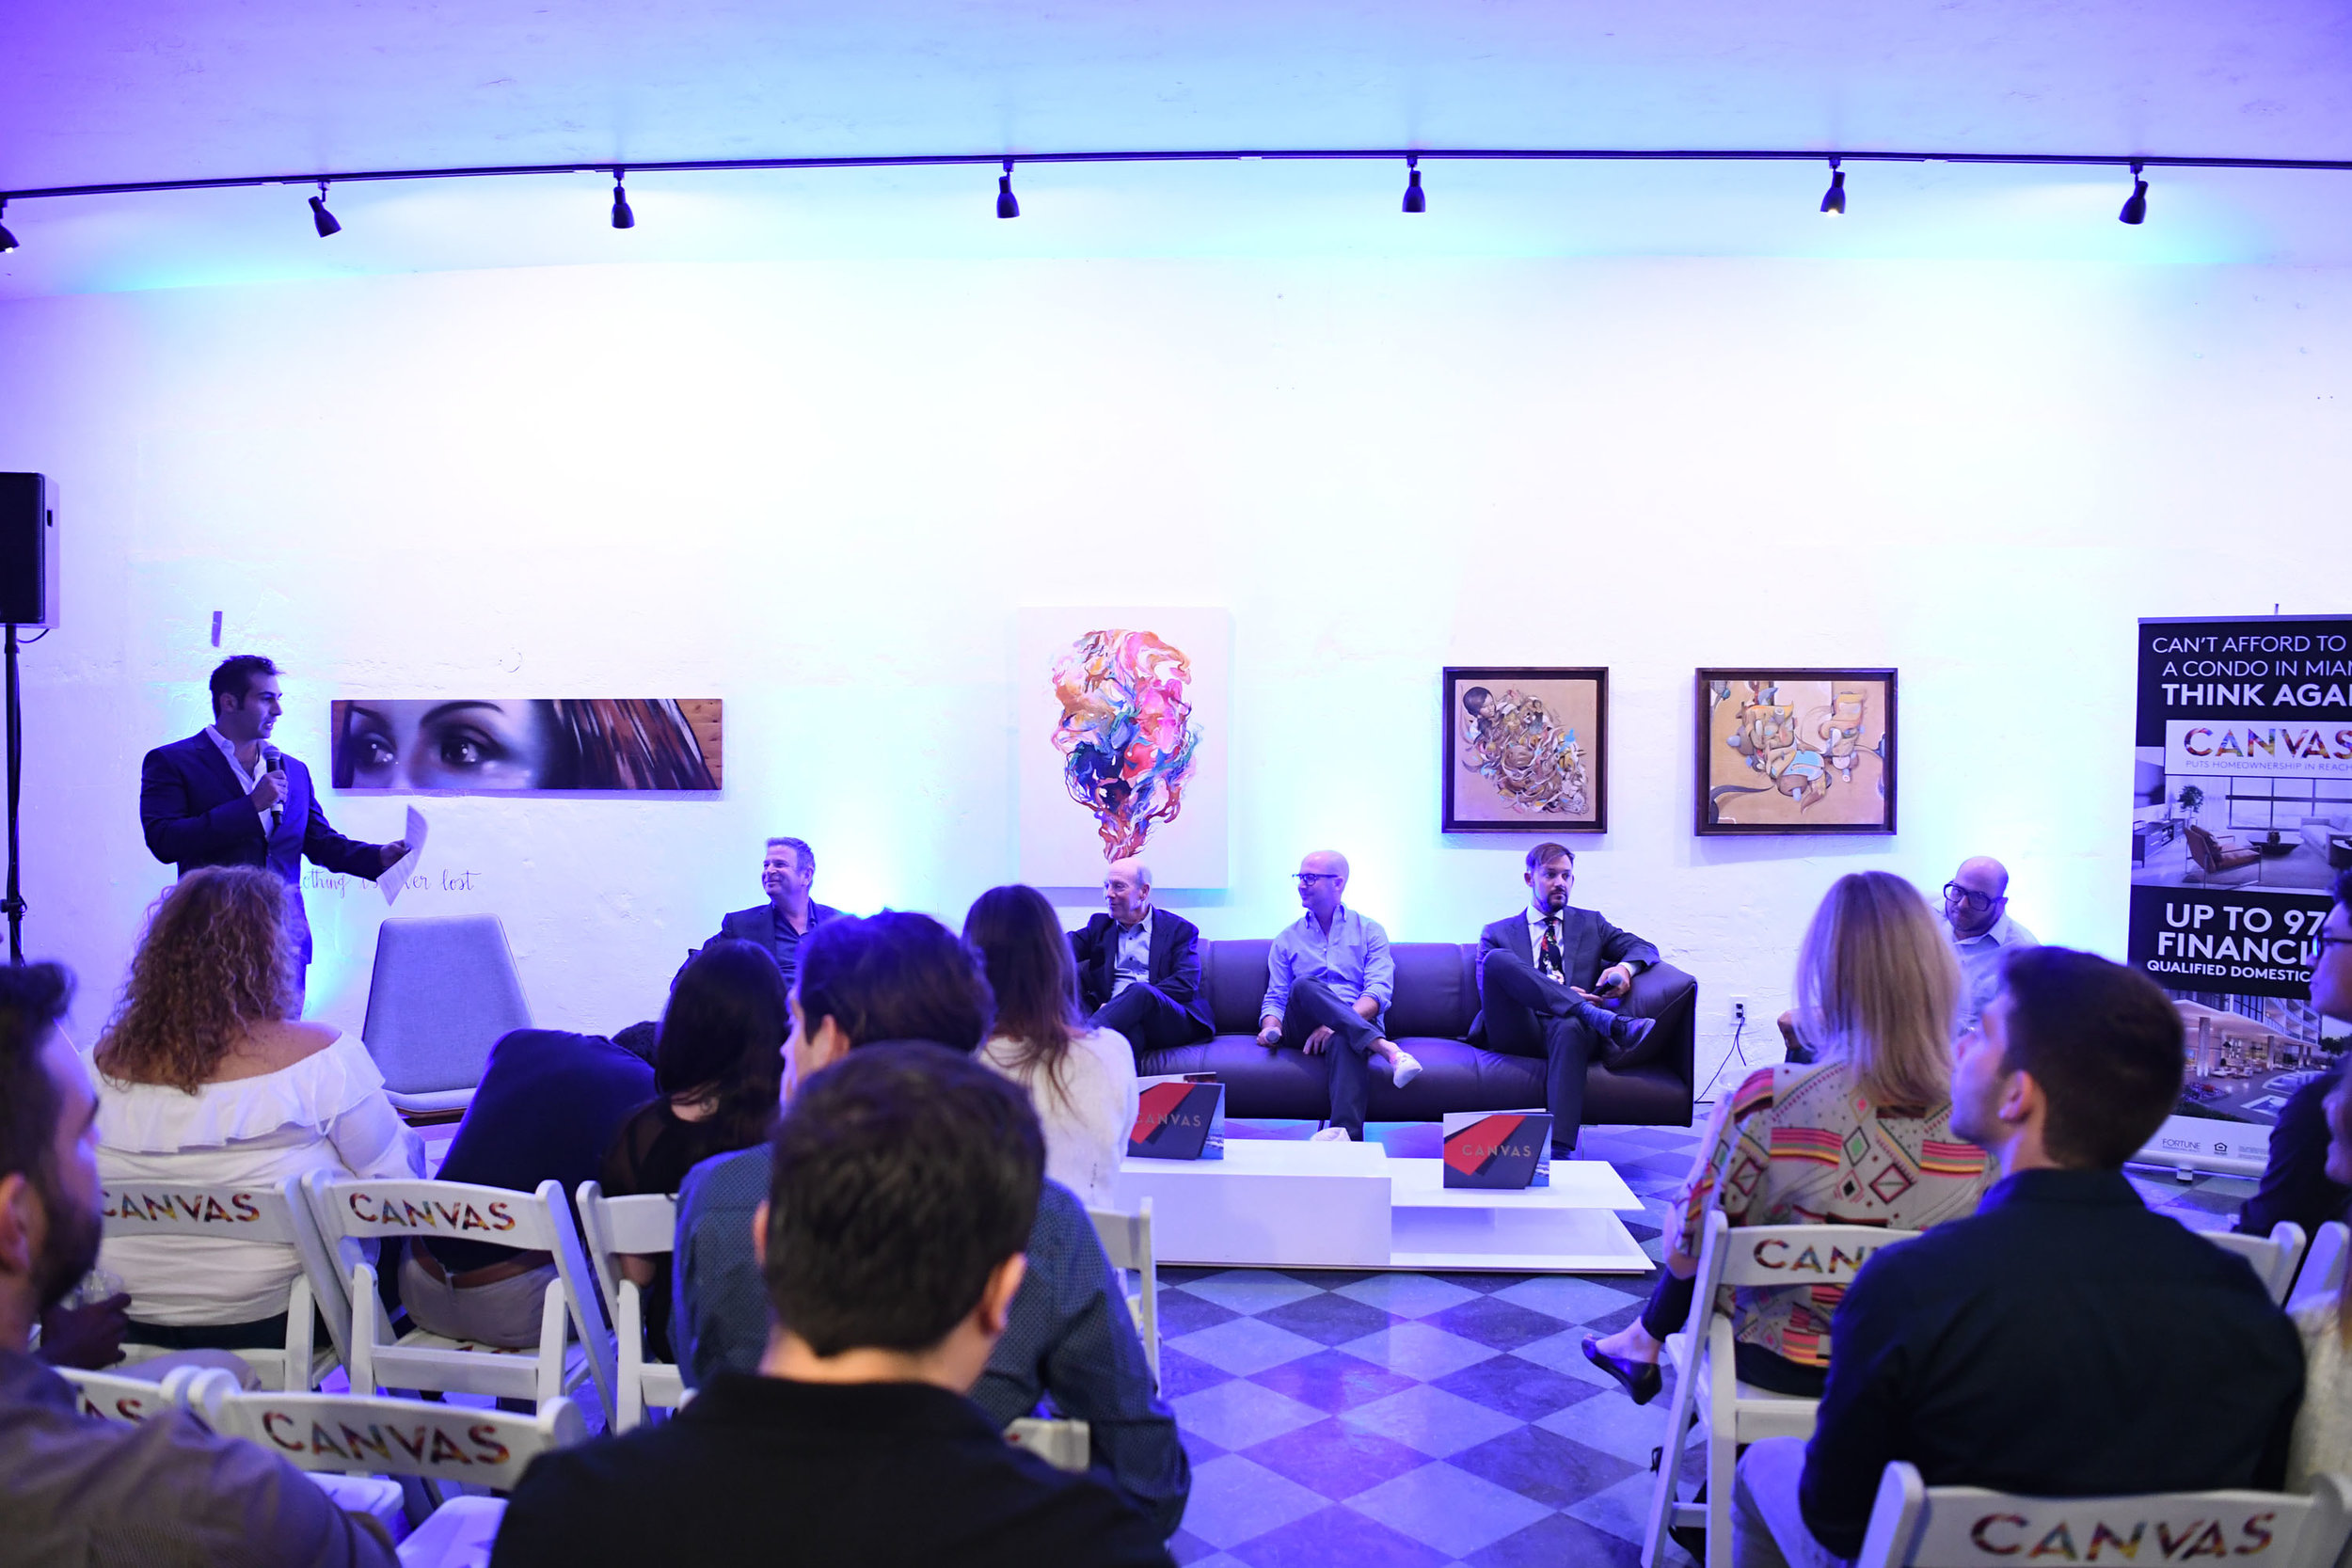 Demetri Demascus, Nir Shoshani, Steven Gretenstein, David Polinsky, Jeremy Calleros Gauger, & Gary Ressler speaking Inside PROFILEmiami's Art in Public Places Panel Event Featuring Leaders from City of Miami, A+E District, Design District and Wynwood